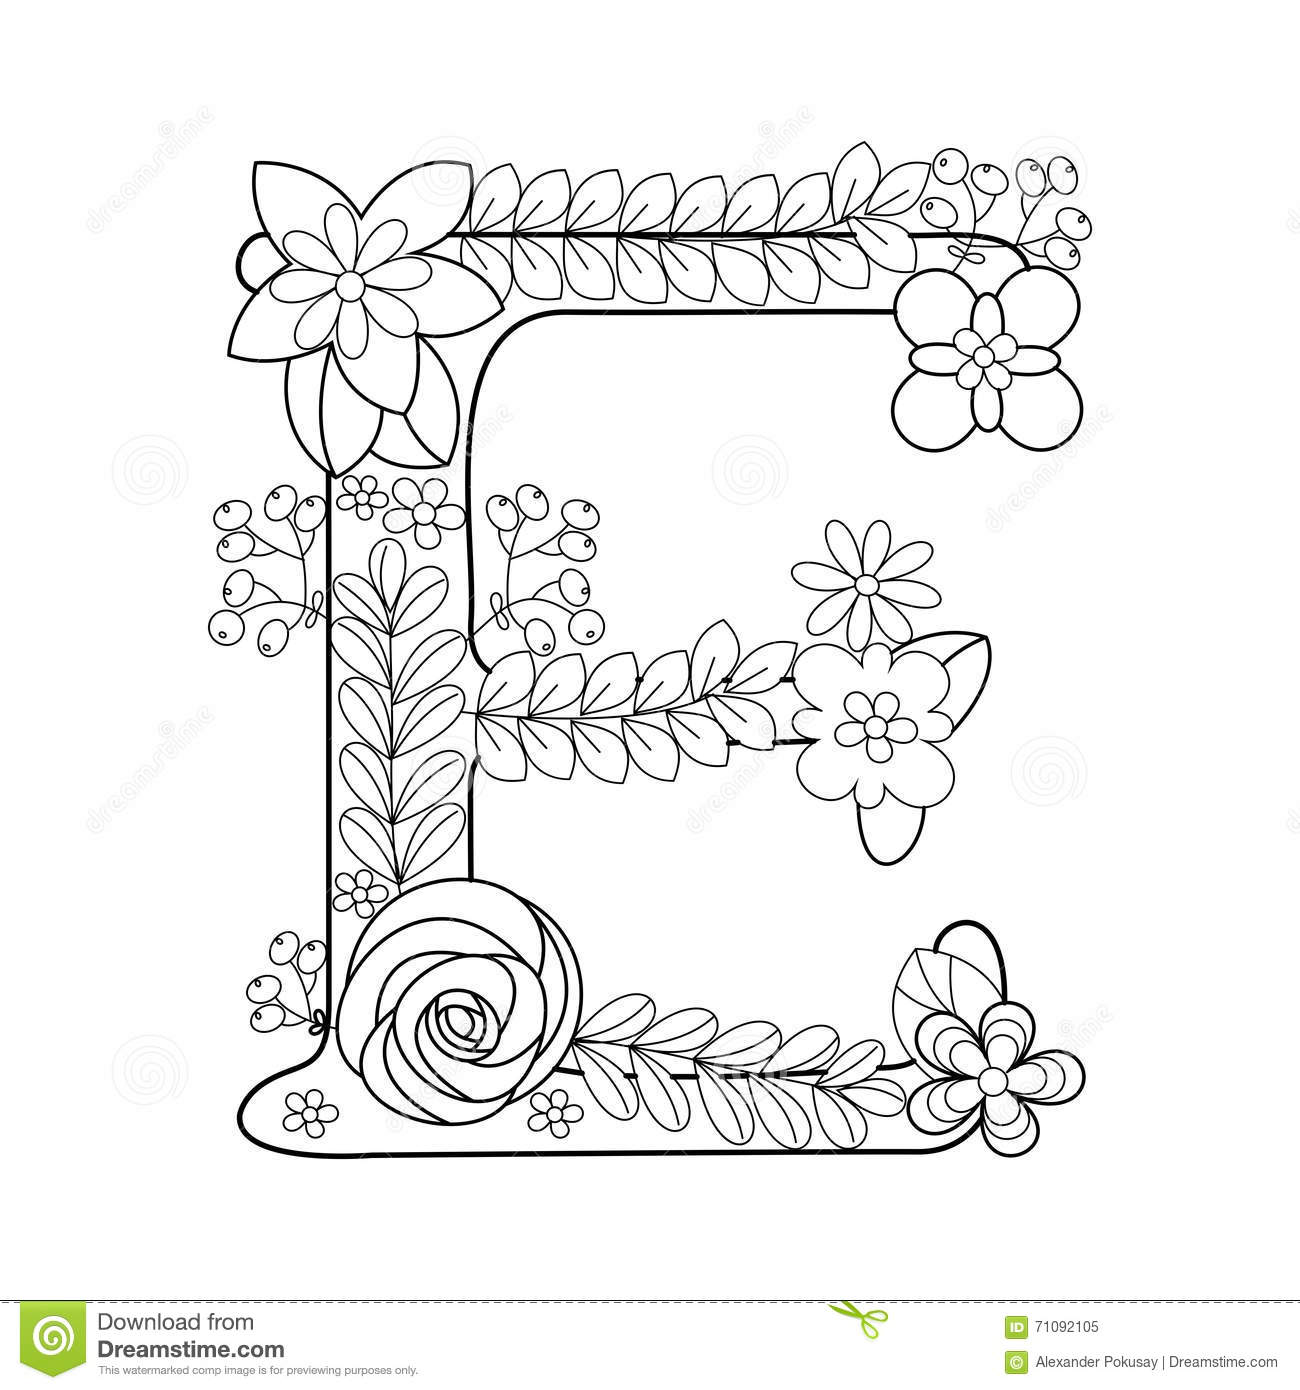 Letter E Coloring Book For Adults Vector Stock Vector Illustration